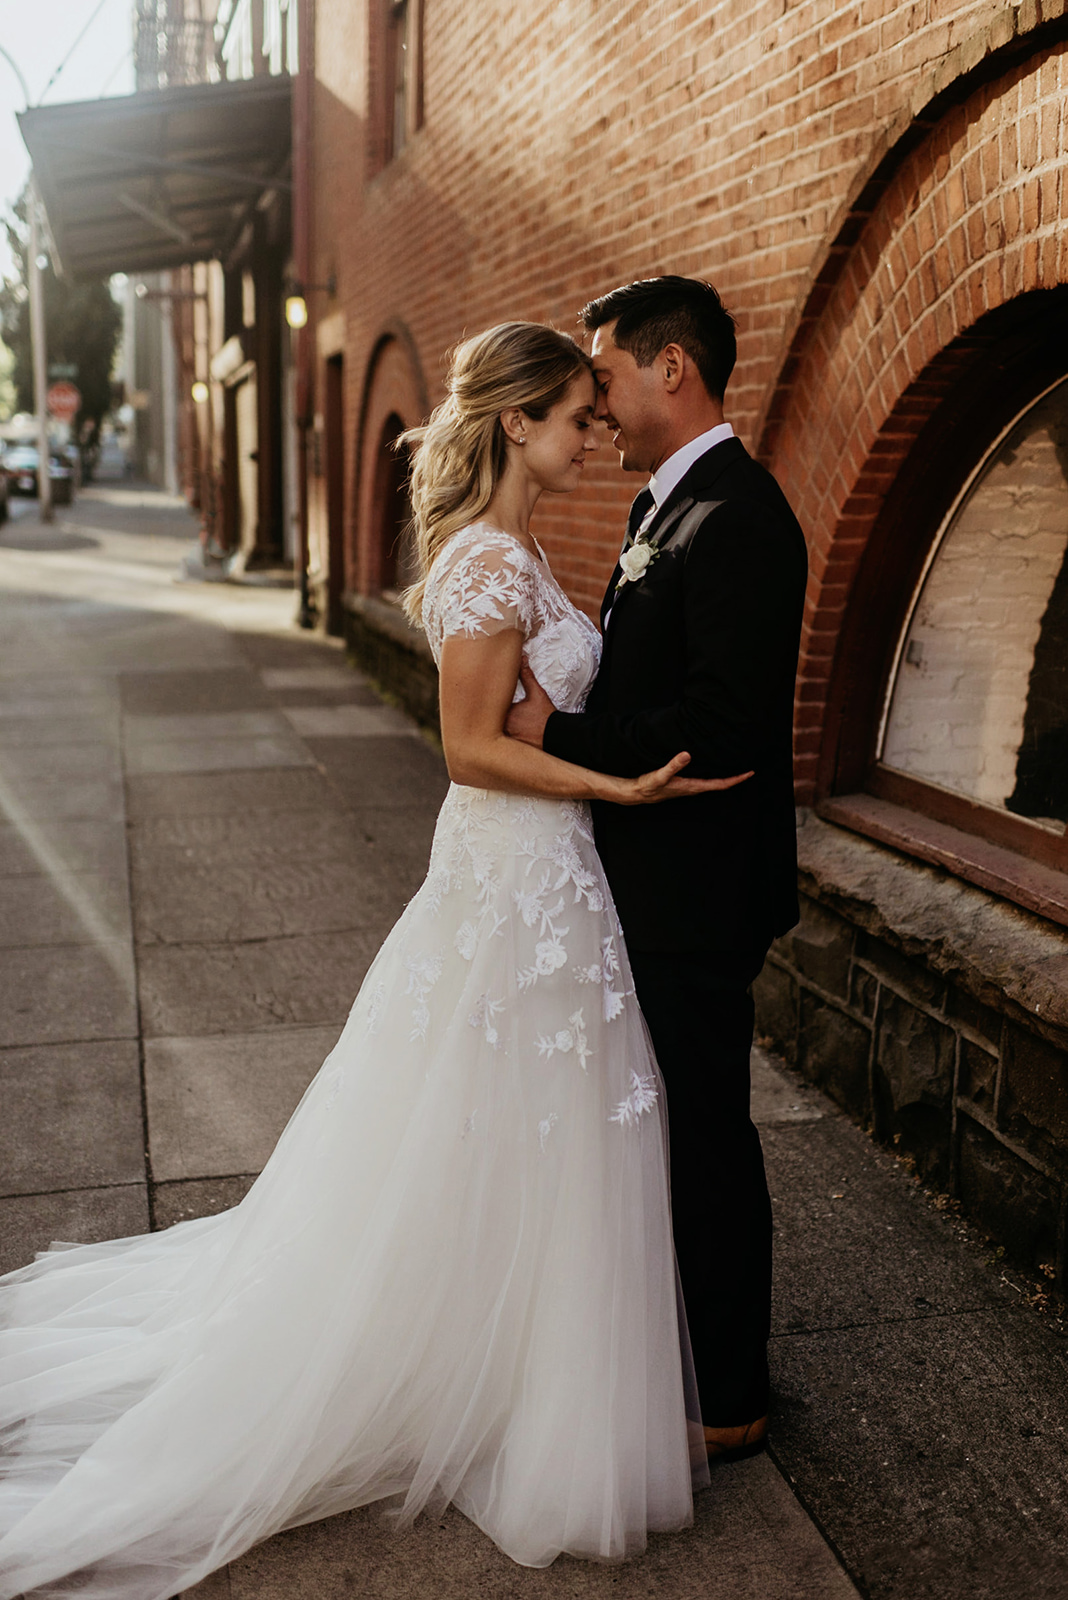 Bridalbliss.com | Portland Wedding | Oregon Event Planning and Design | Laurken Kendall Photography